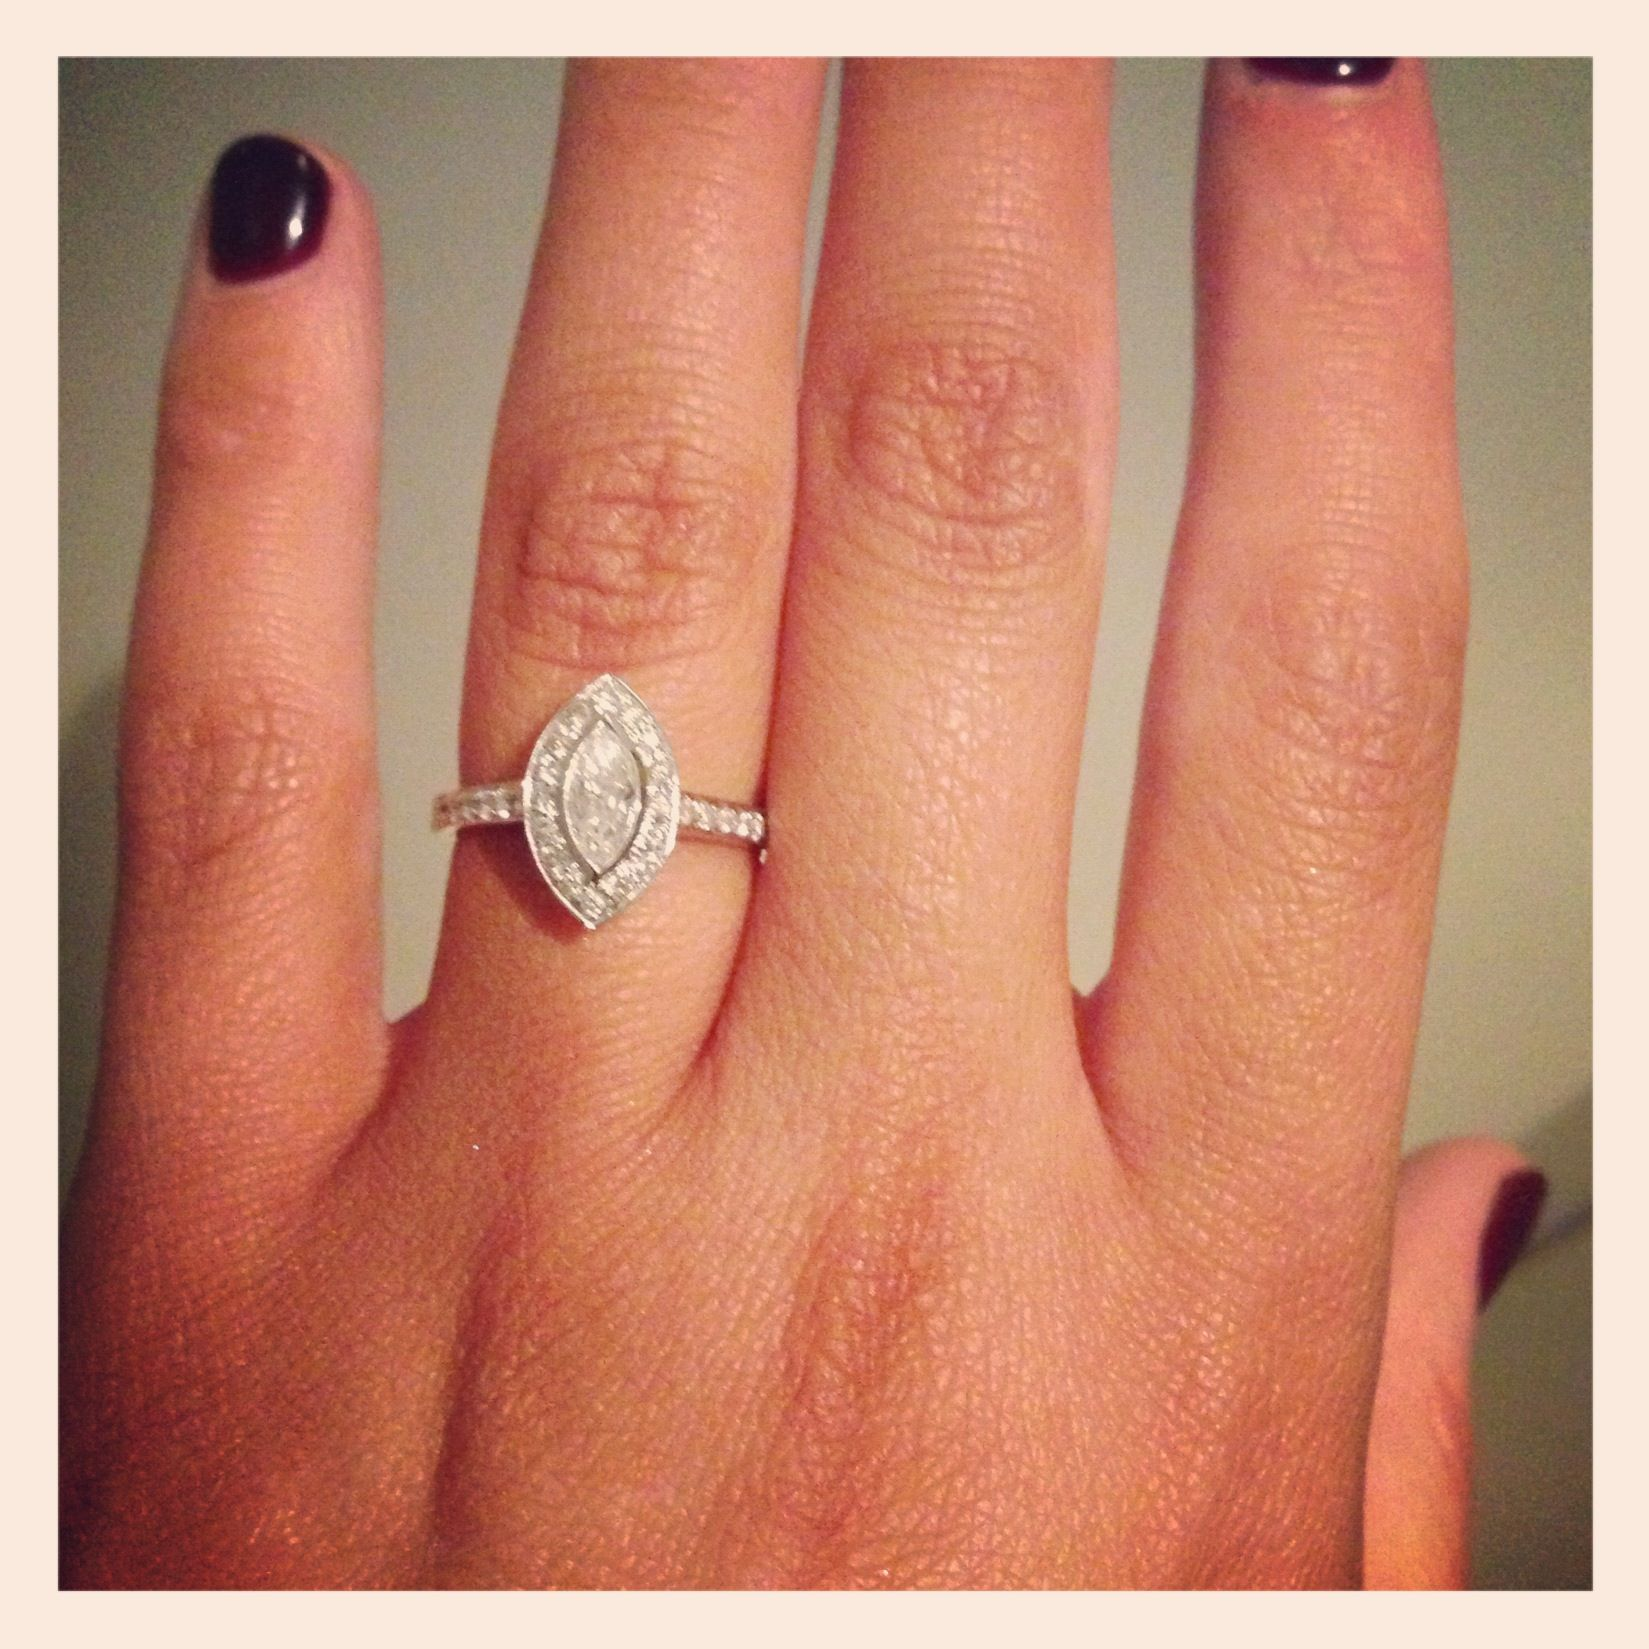 Find This Pin And More On Engagement Rings With Matching Wedding Bands